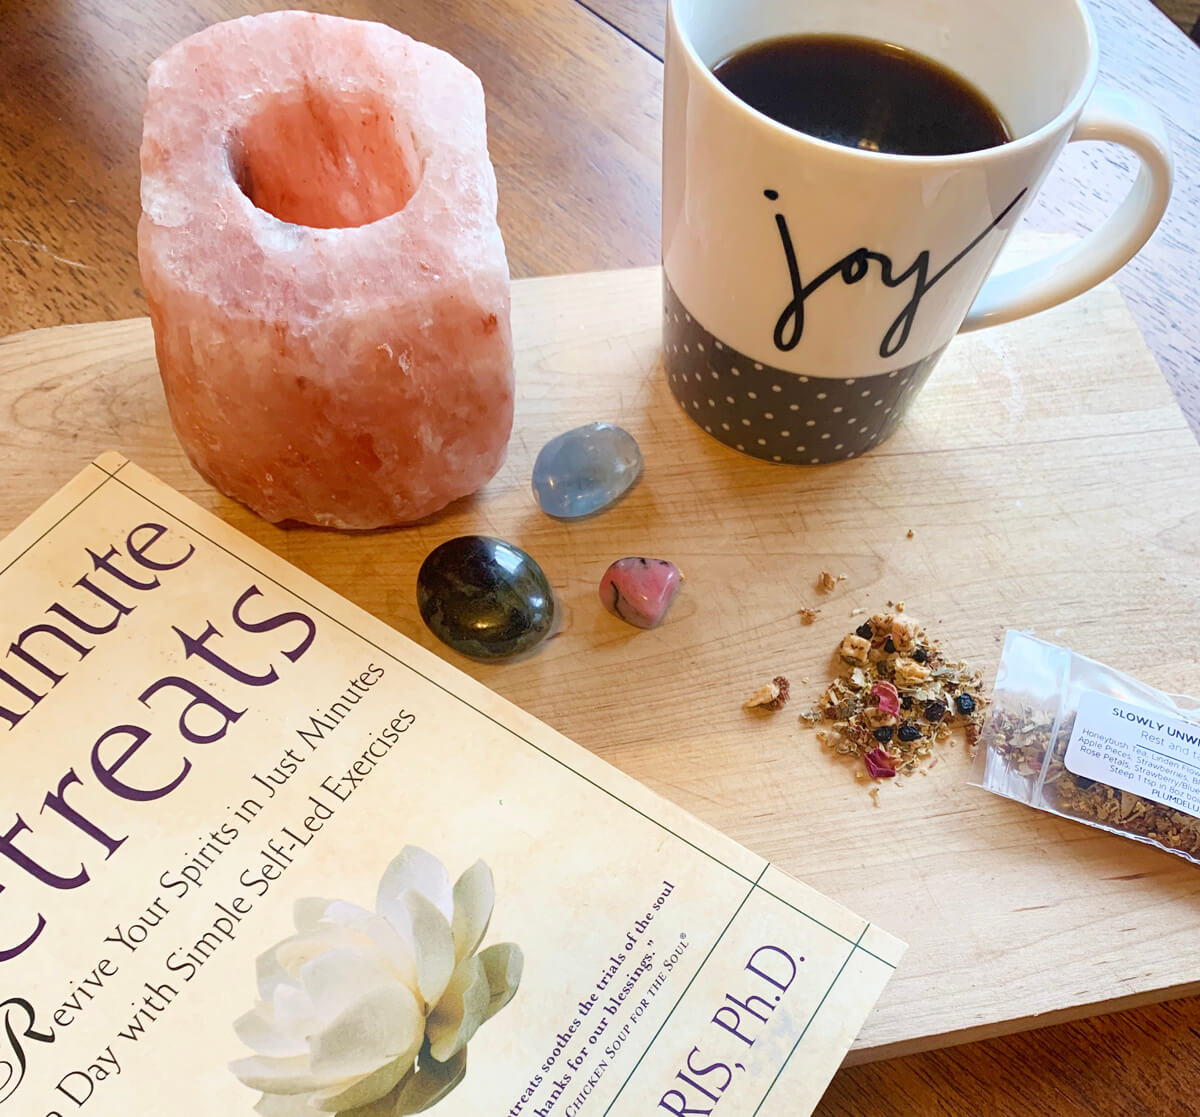 A cup of tea, Himalayan sea salt candle holder, several polished crystal stones, a bag of a loose leaf herbal tea, and a book sit on a wooden surface.